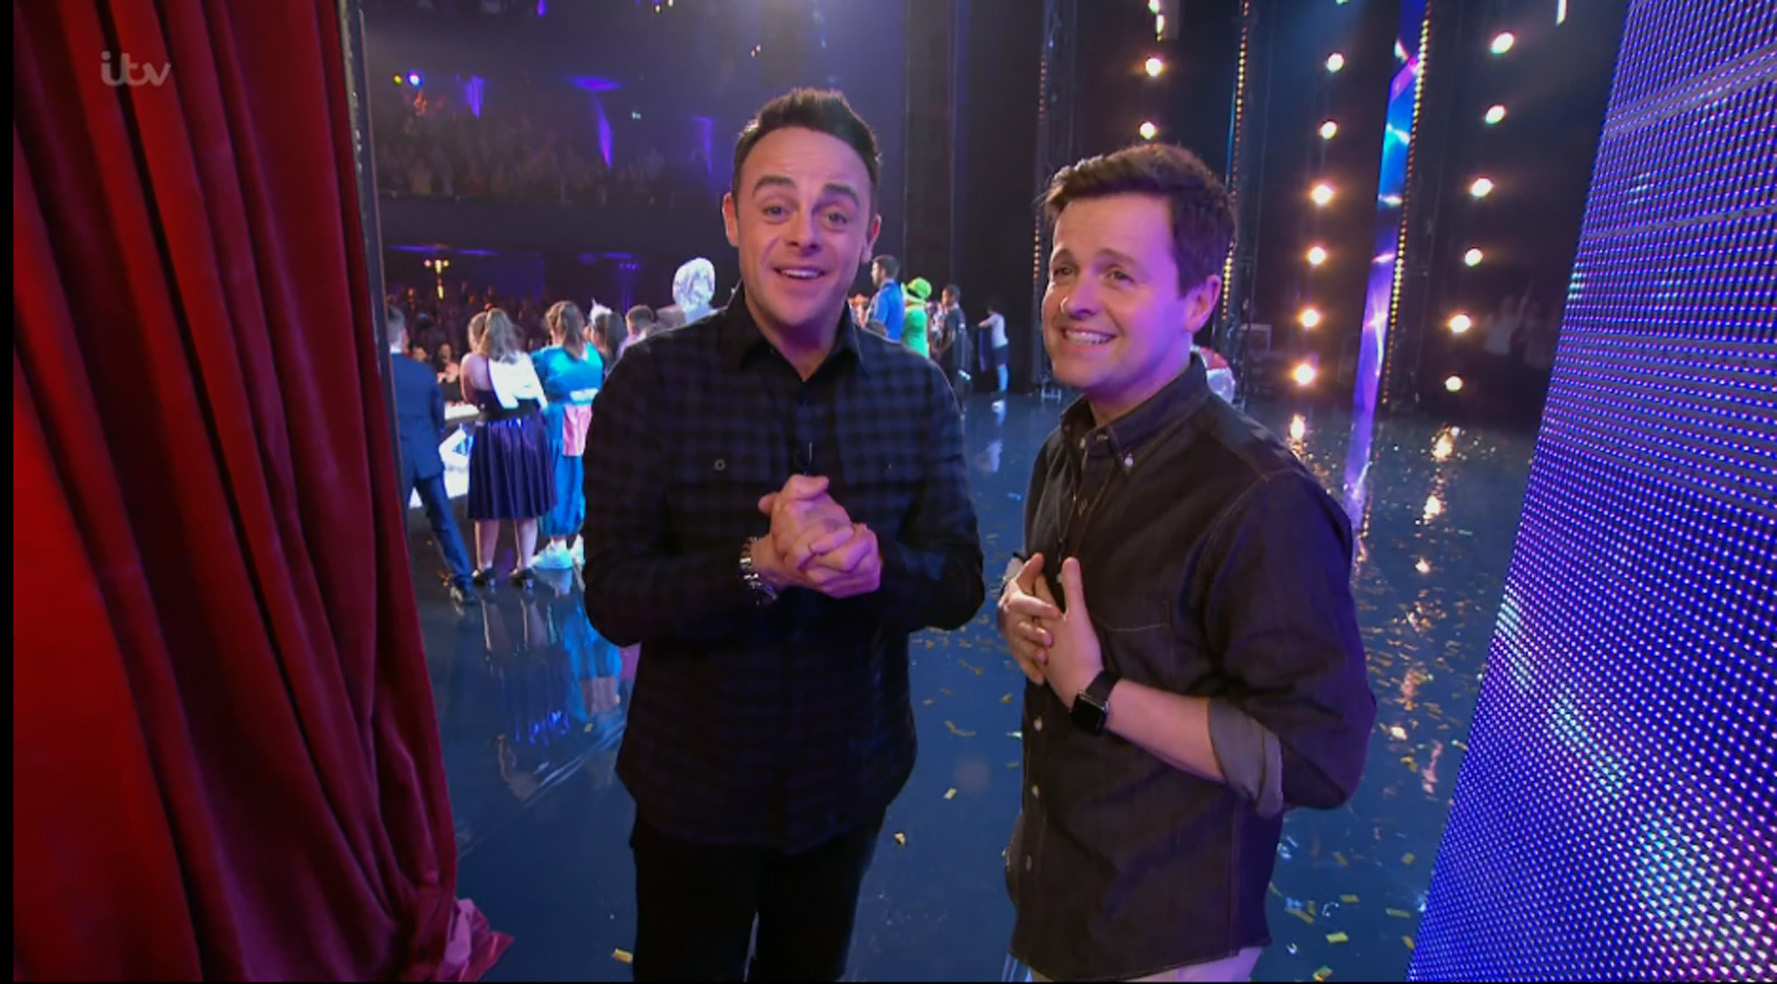 Britain's Got Talent becomes most watched TV show of 2019 as Ant McPartlin returns to the spotlight